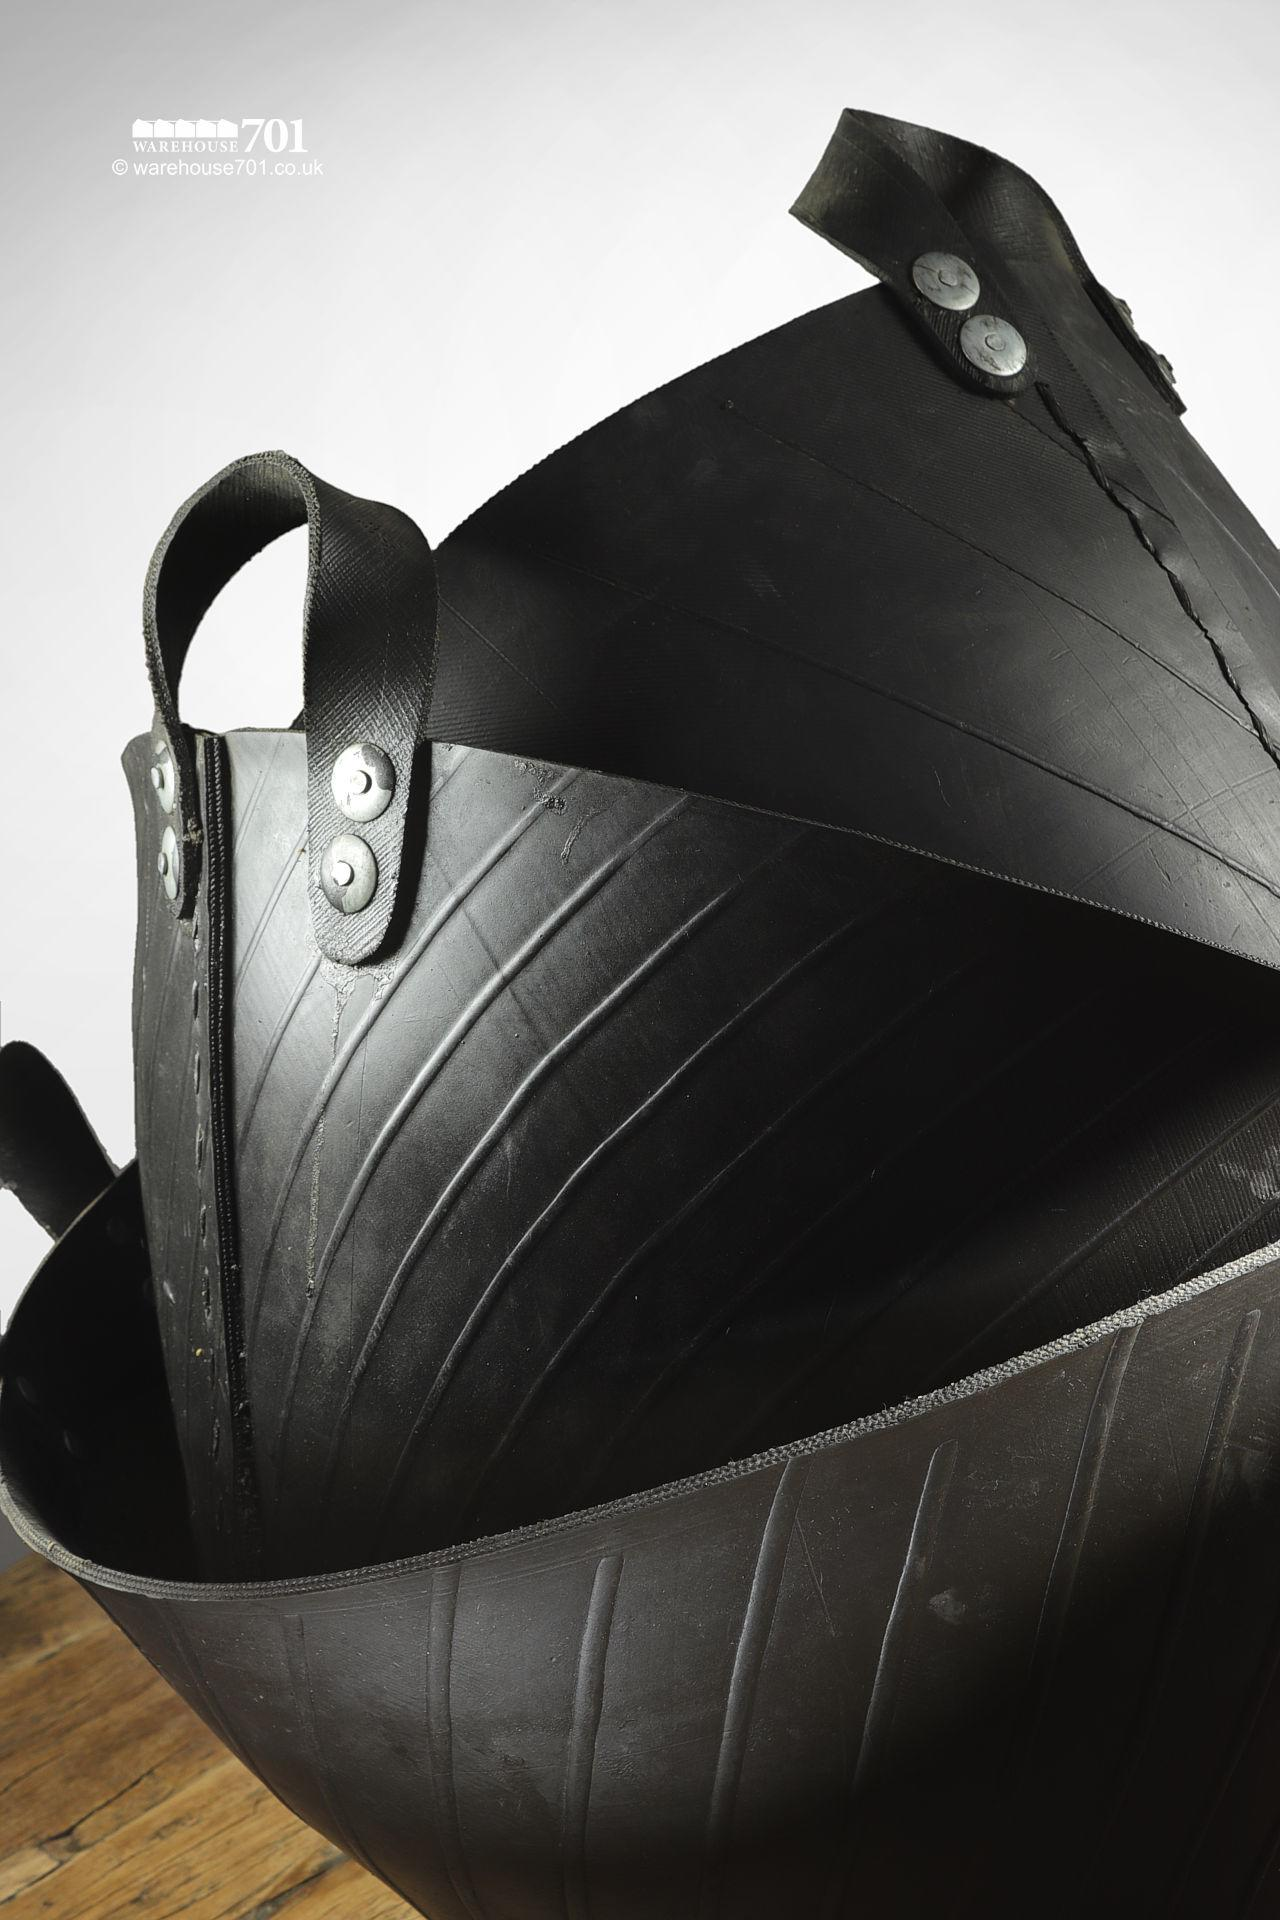 NEW Extra Tough! Recycled Tyre Buckets with Twin Riveted Handles #2